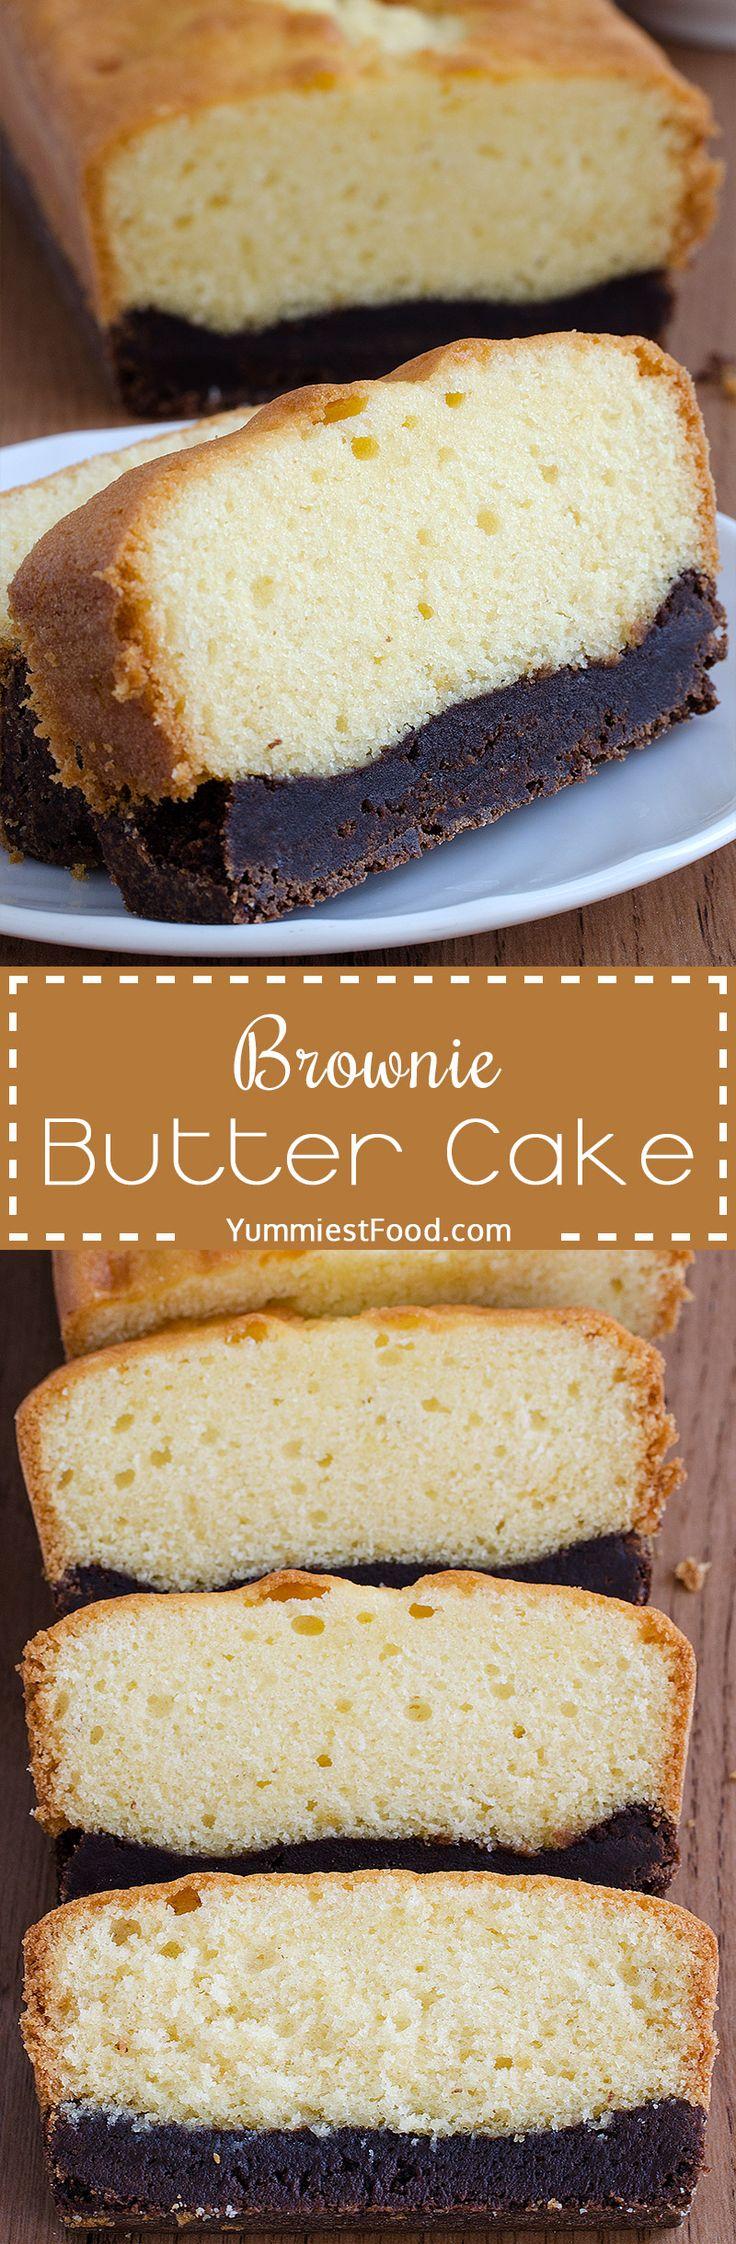 Brownie Butter Cake - delicious, sweet and perfectly moist